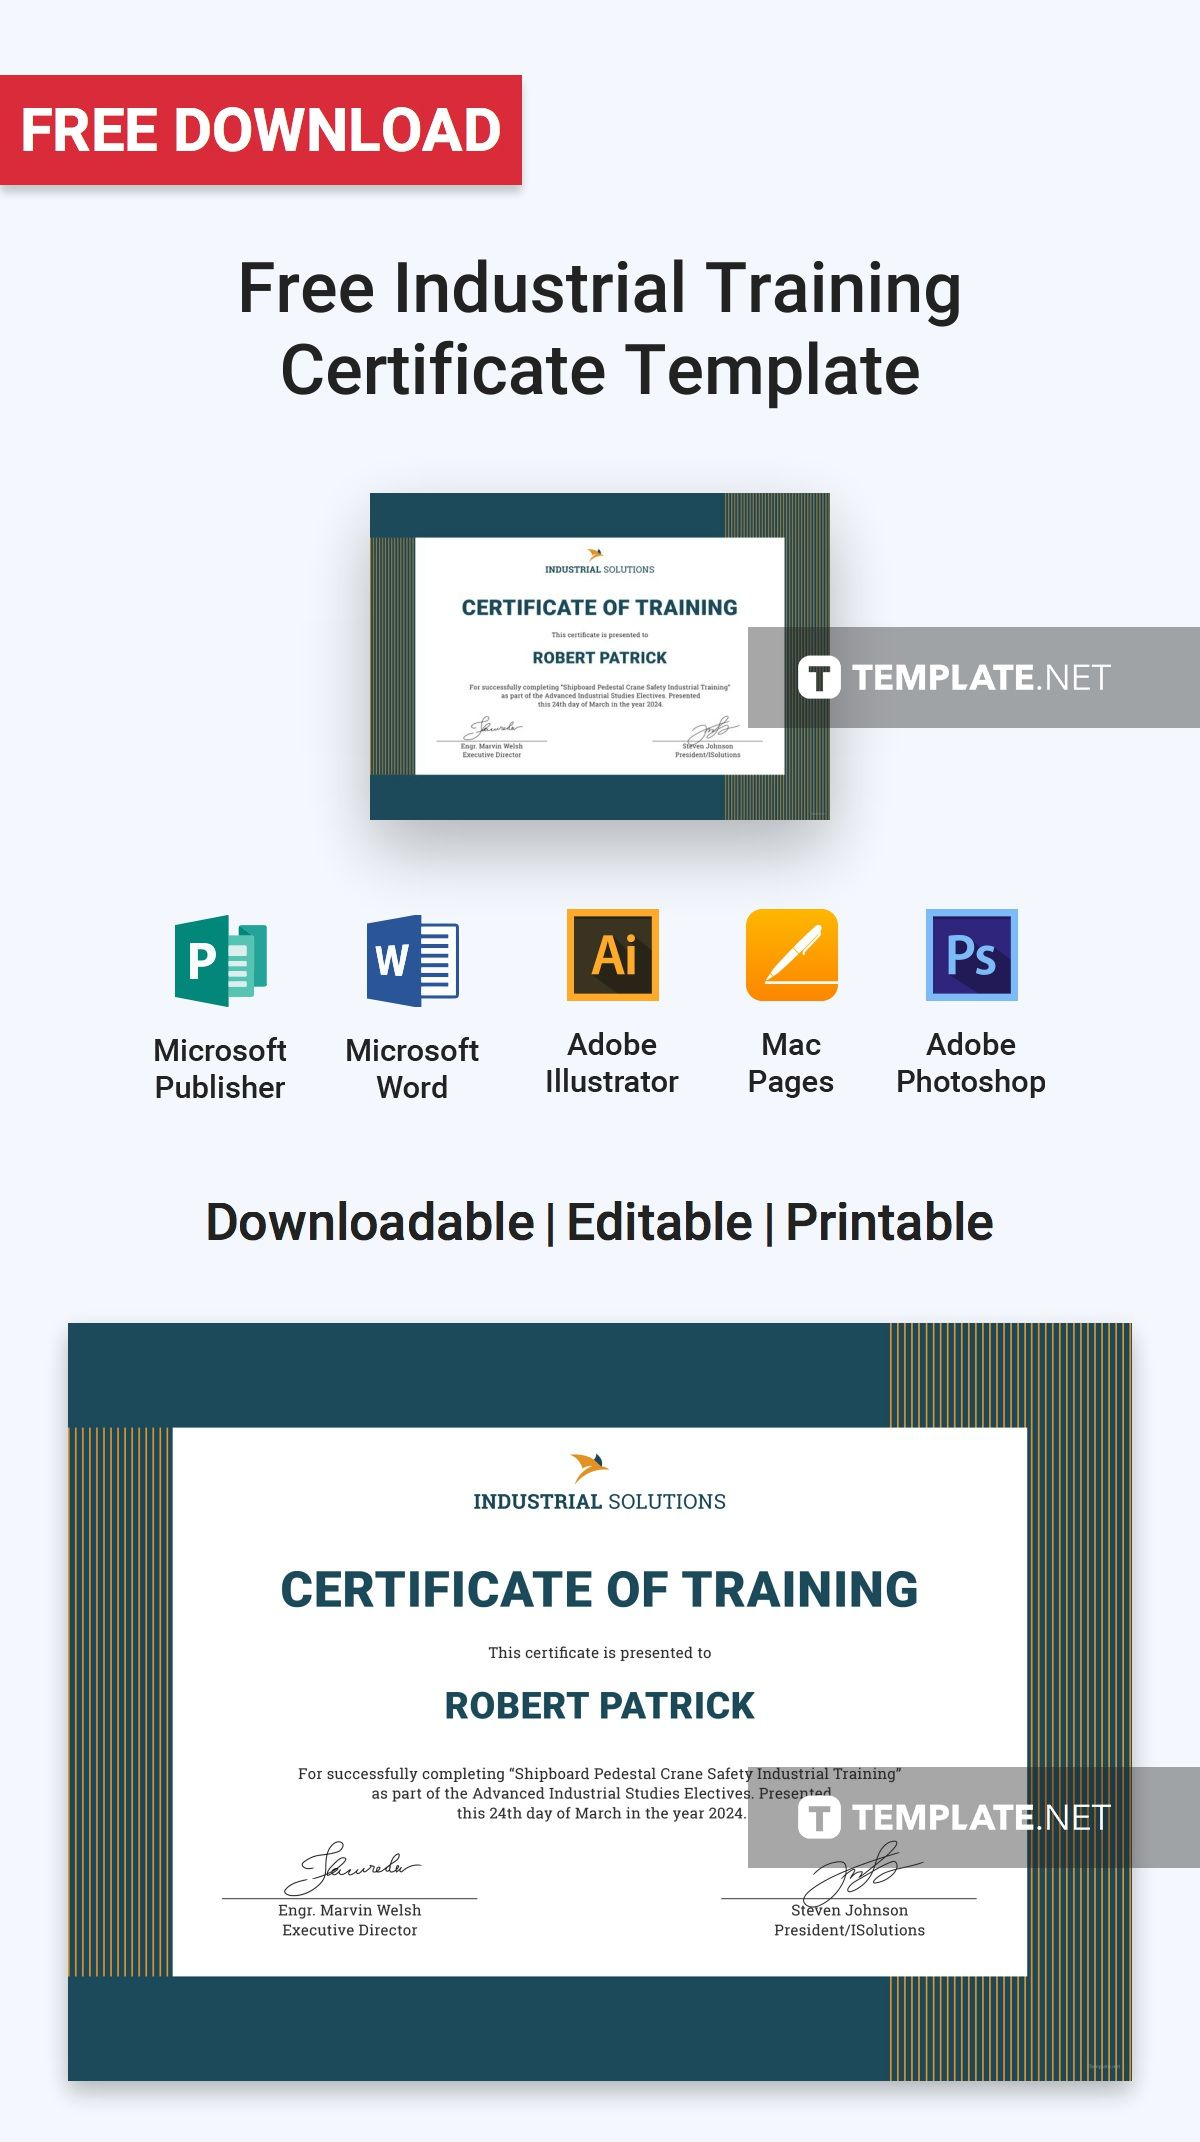 Free industrial training certificate training certificate free industrial training certificate training certificate certificate and template yadclub Gallery